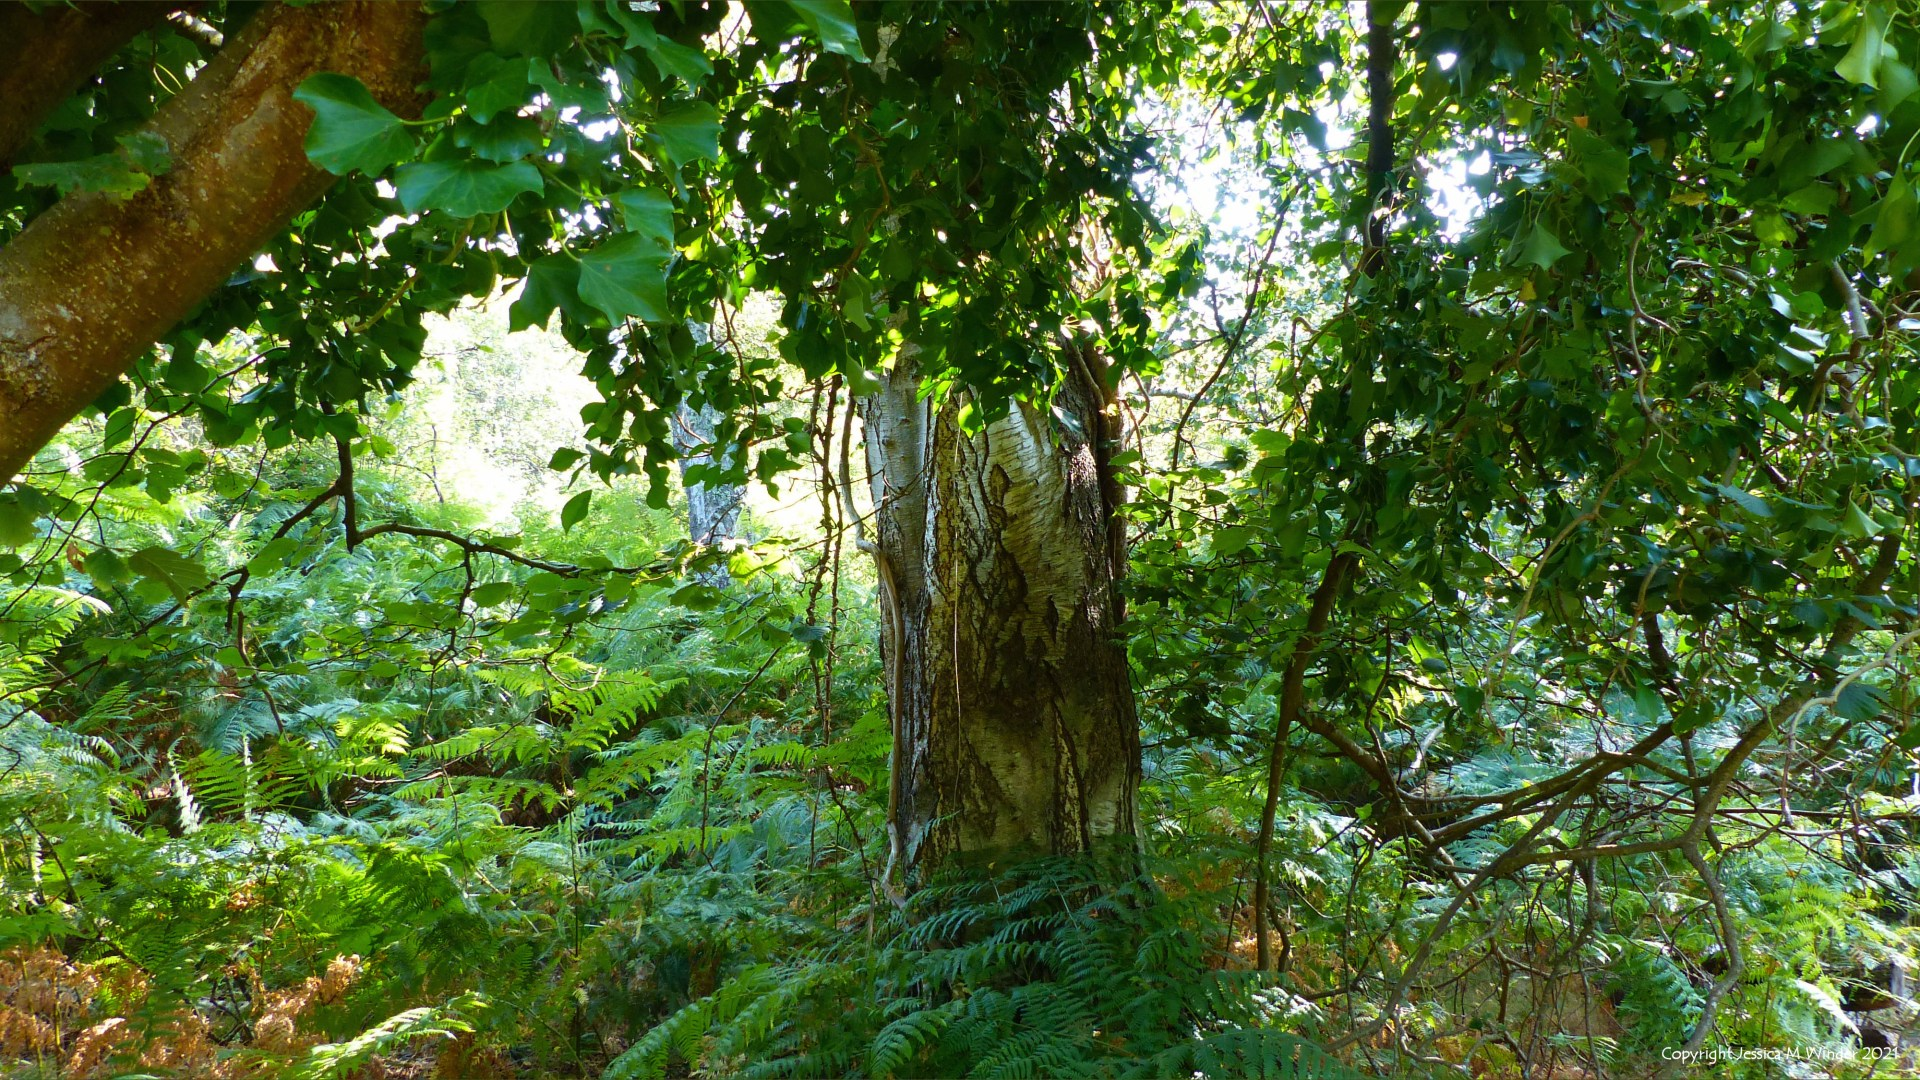 Birch tree in the woods with ferns